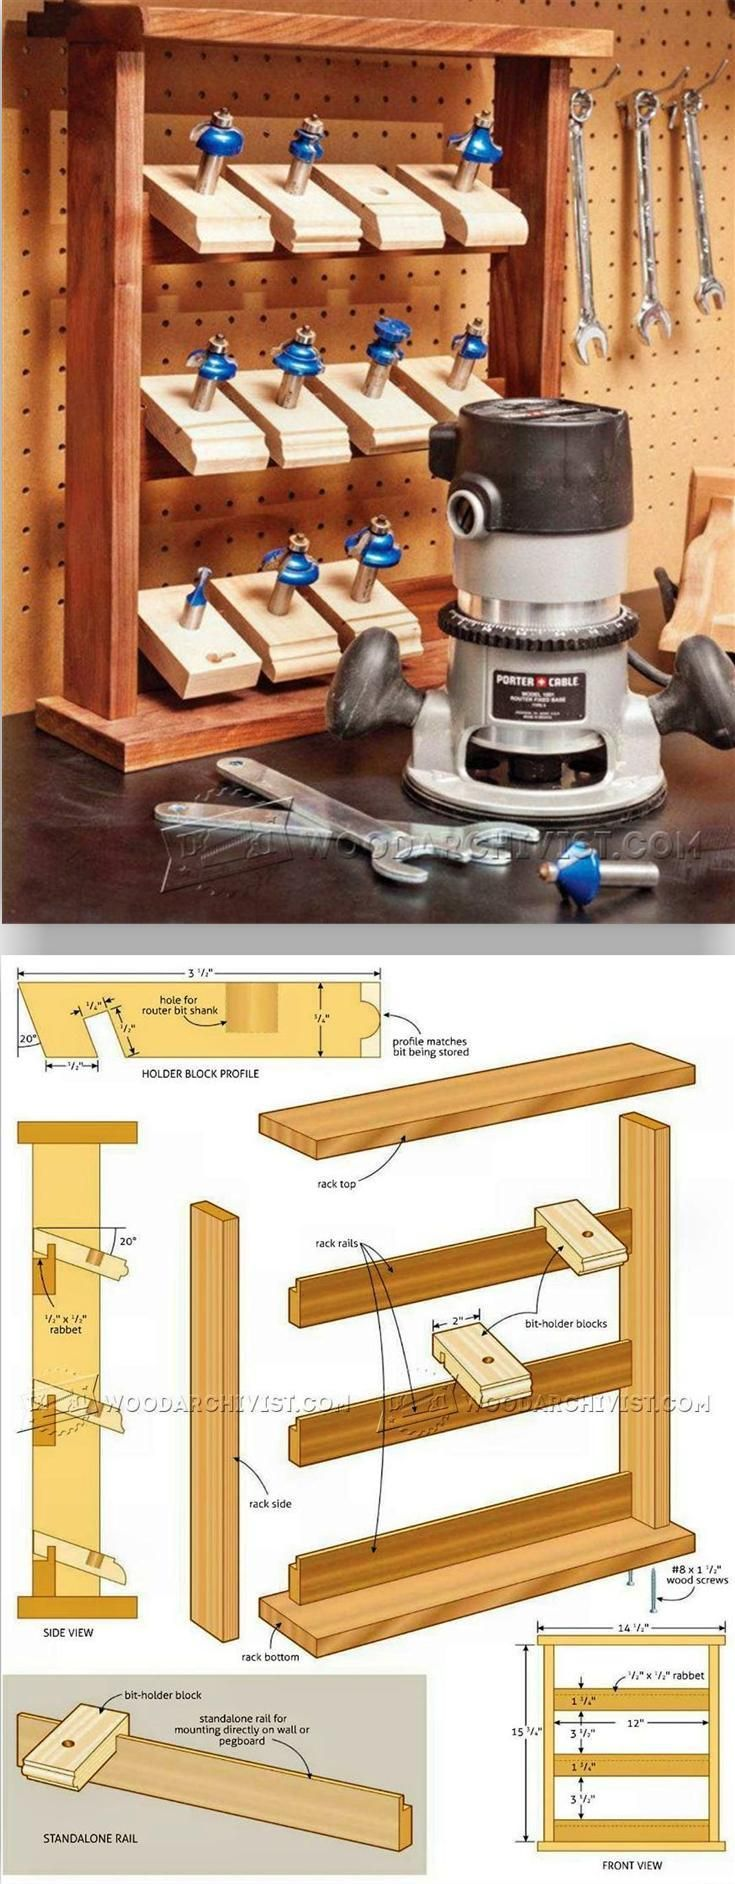 Router Bit Holder Plans - Router Tips, Jigs and Fixtures | WoodArchivist.com